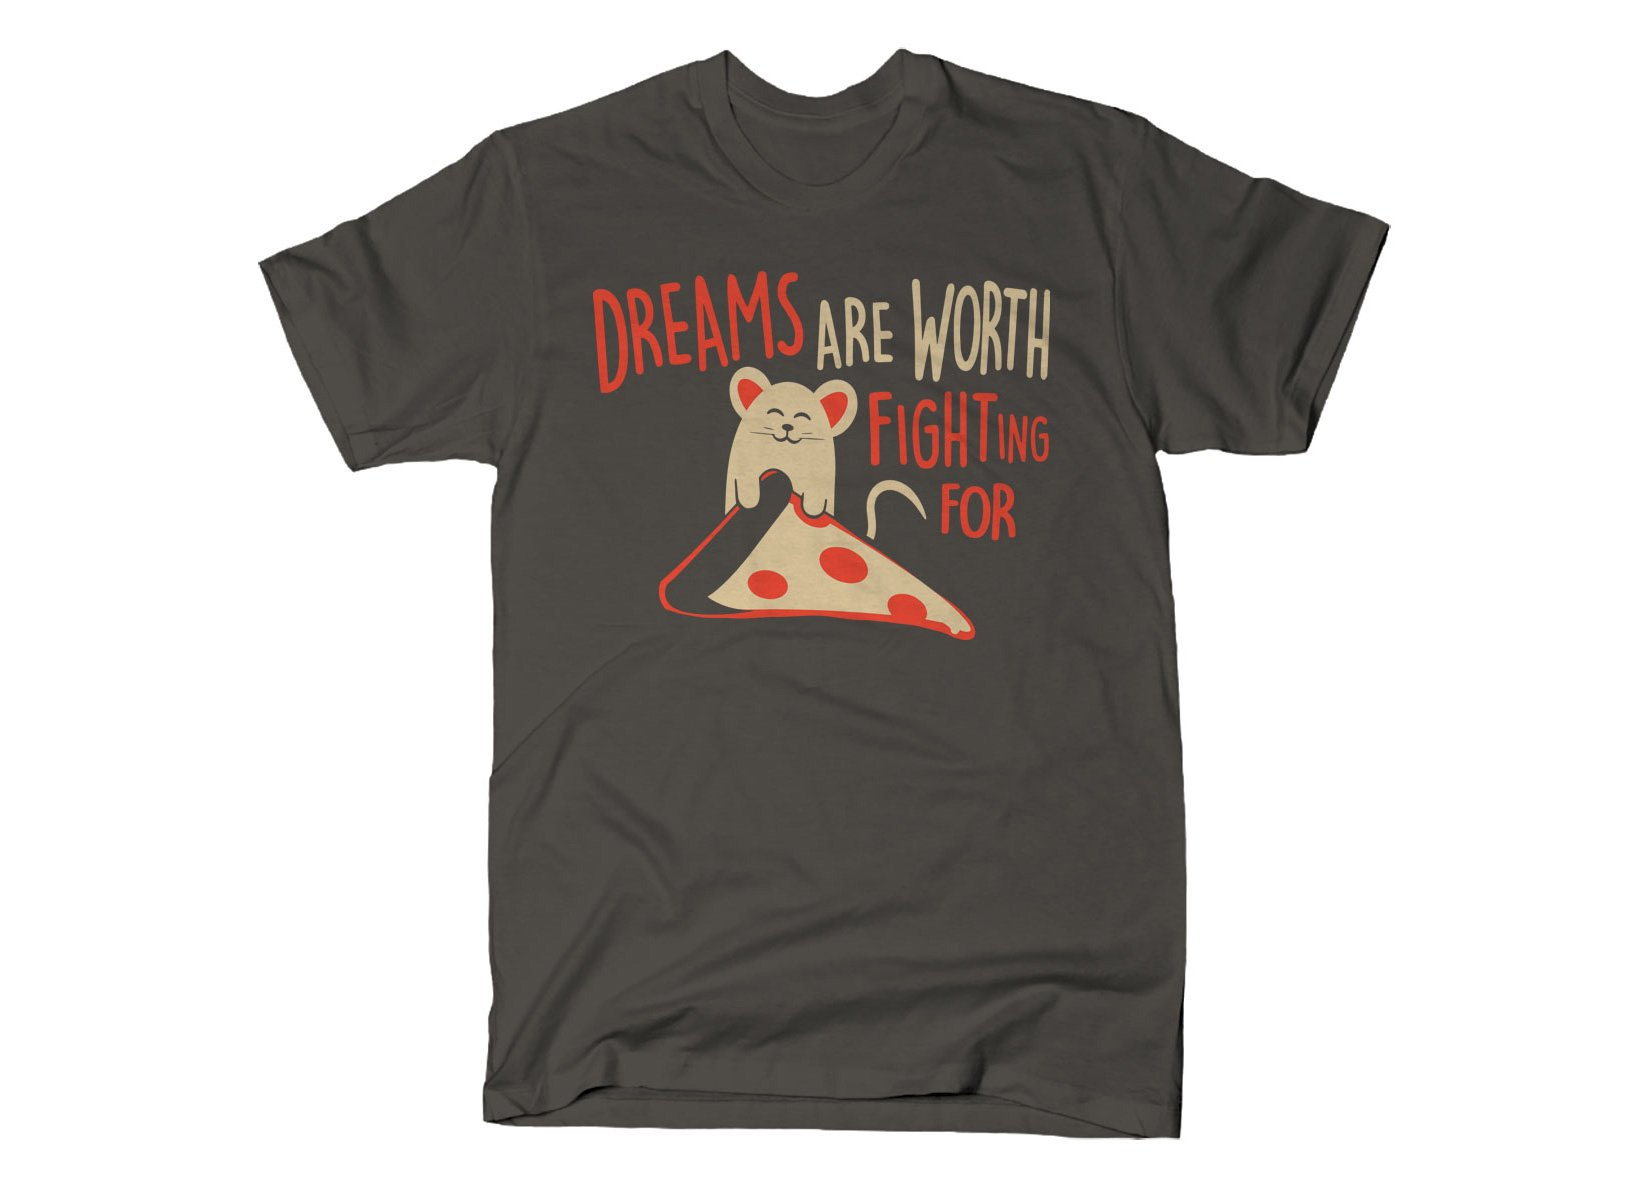 Dreams Are Worth Fighting For on Mens T-Shirt